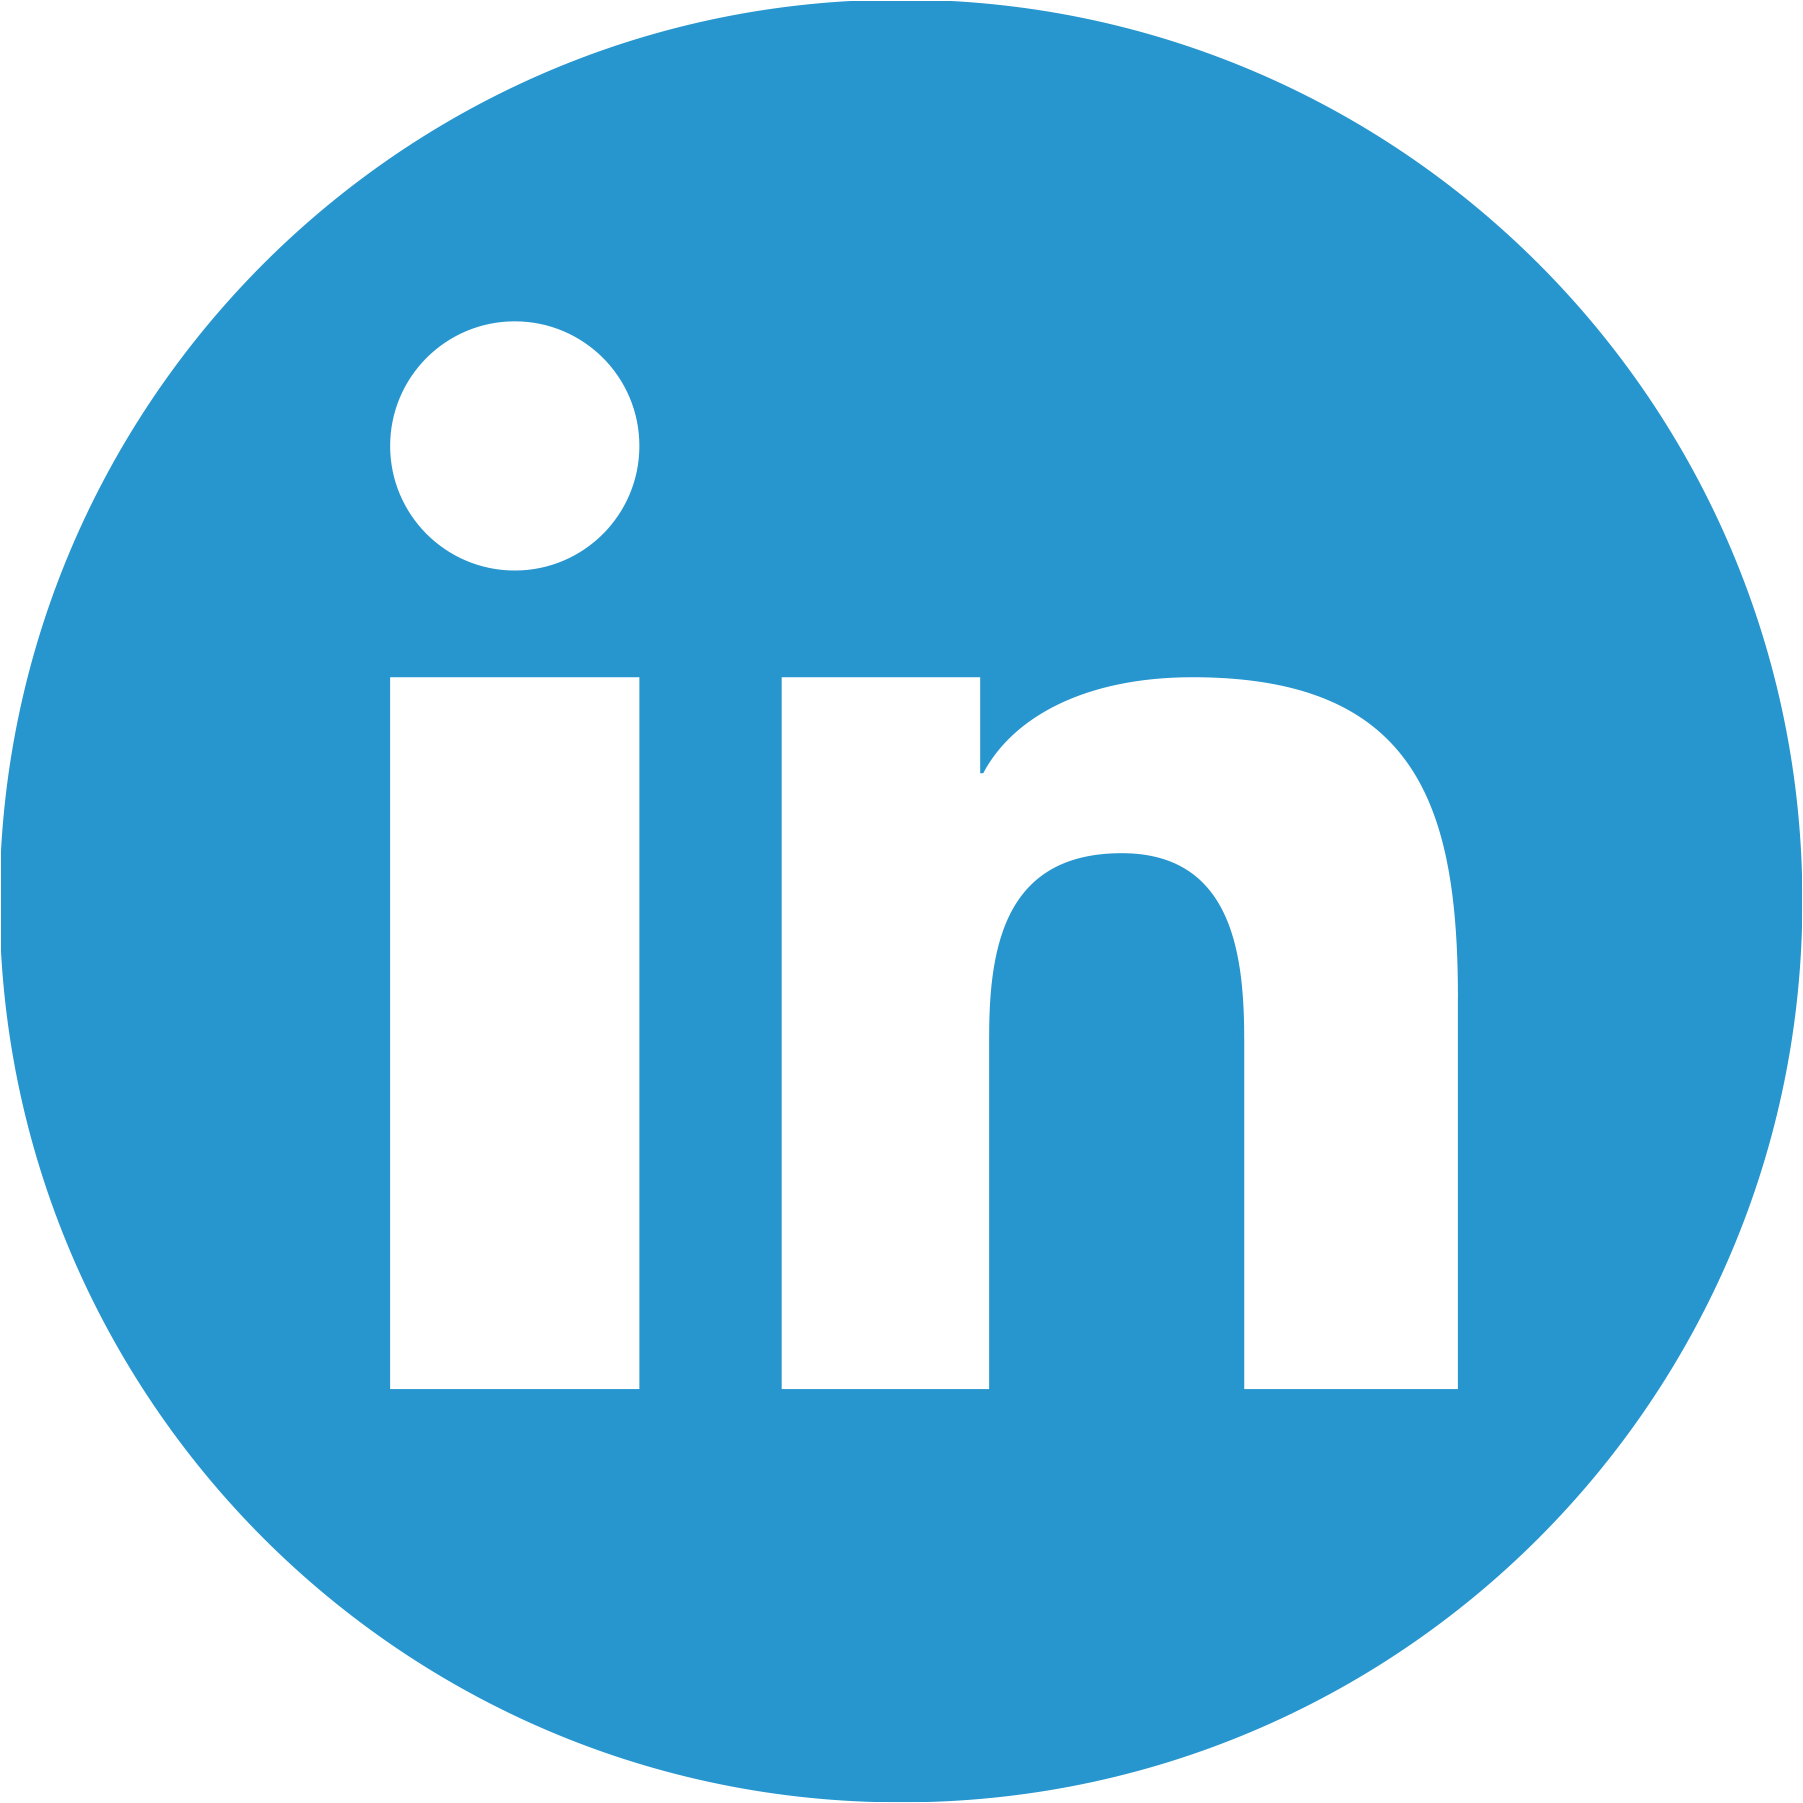 Follow The Danver Group on LinkedIn